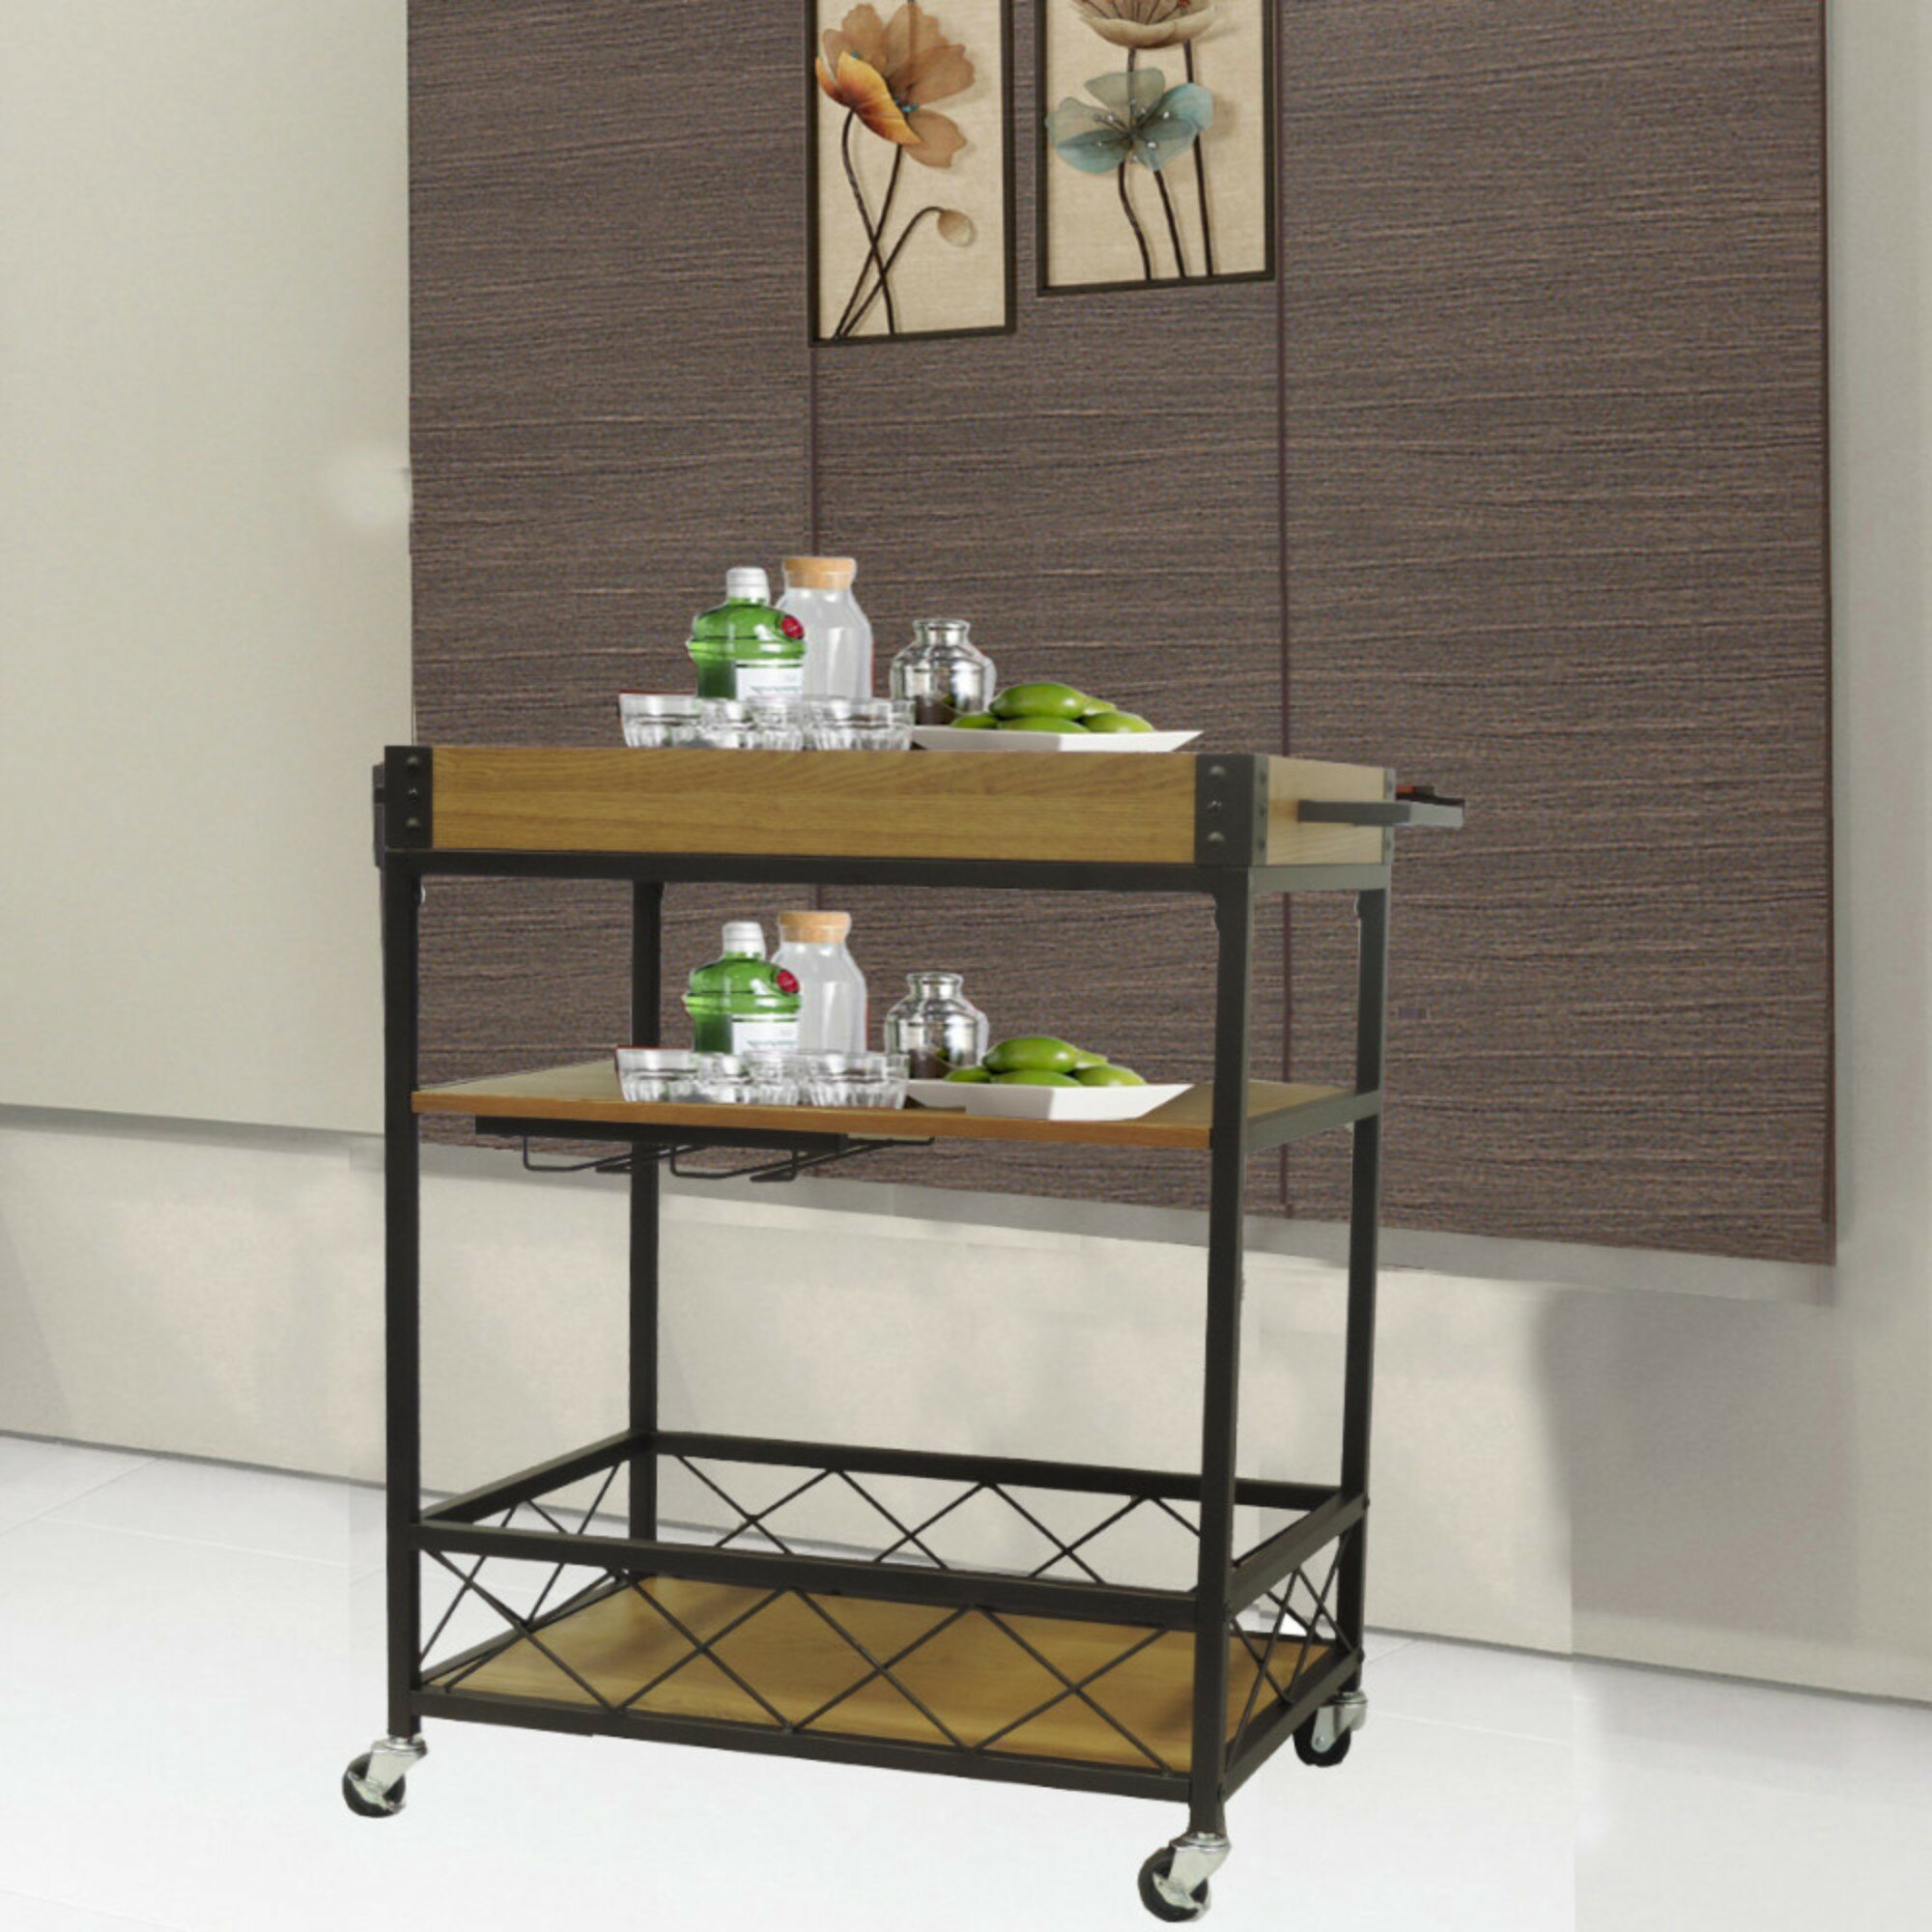 Charmant Williston Forge Booth Kitchen Mobile Serving Bar Cart U0026 Reviews | Wayfair